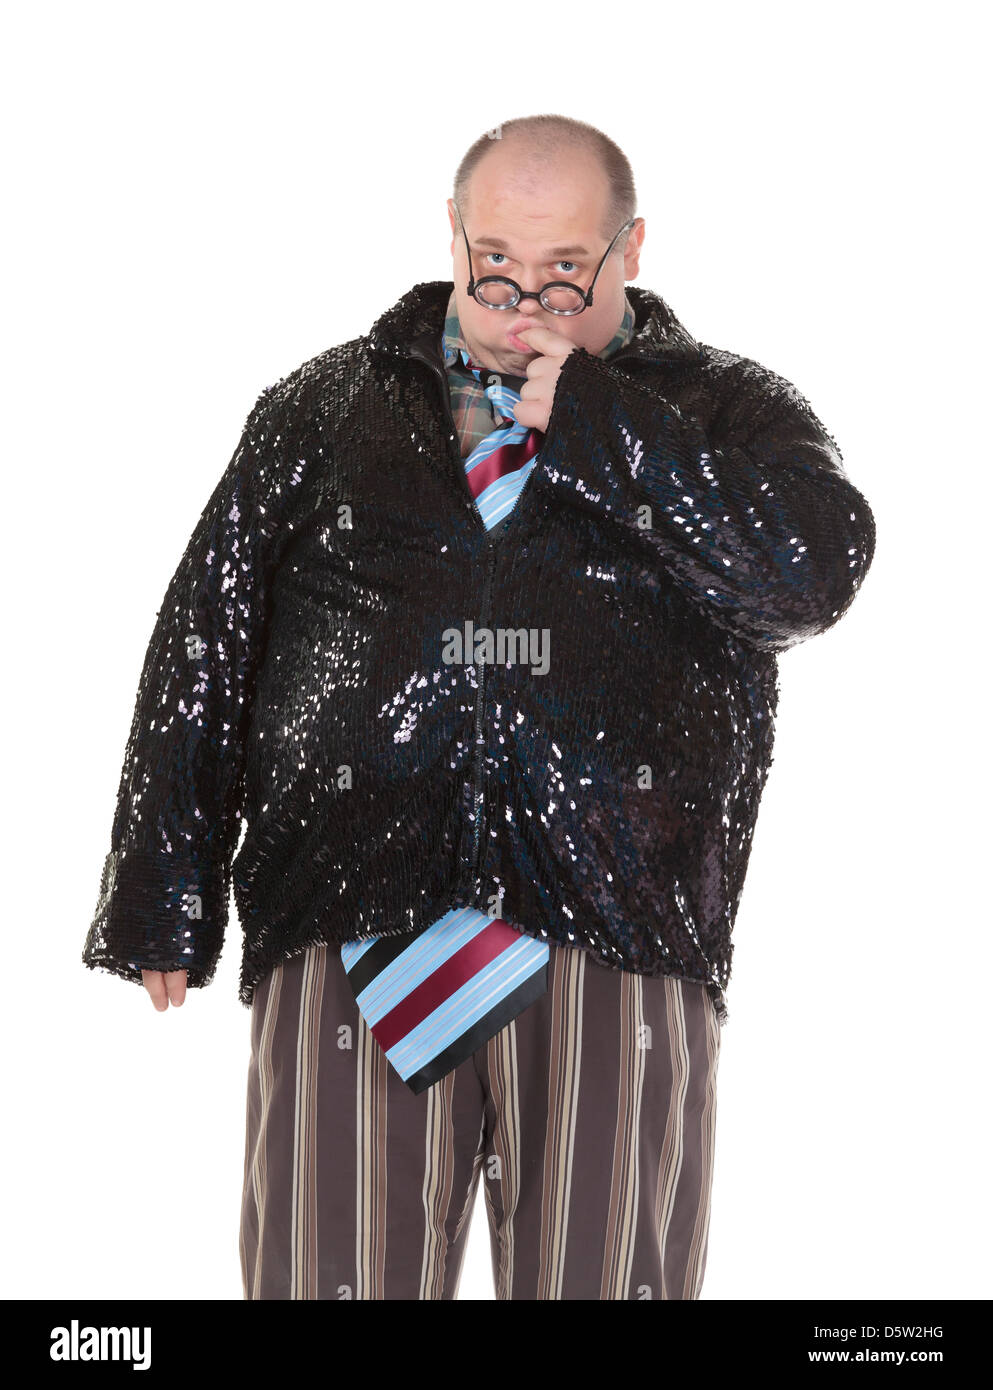 Obese man with an outrageous fashion sense - Stock Image